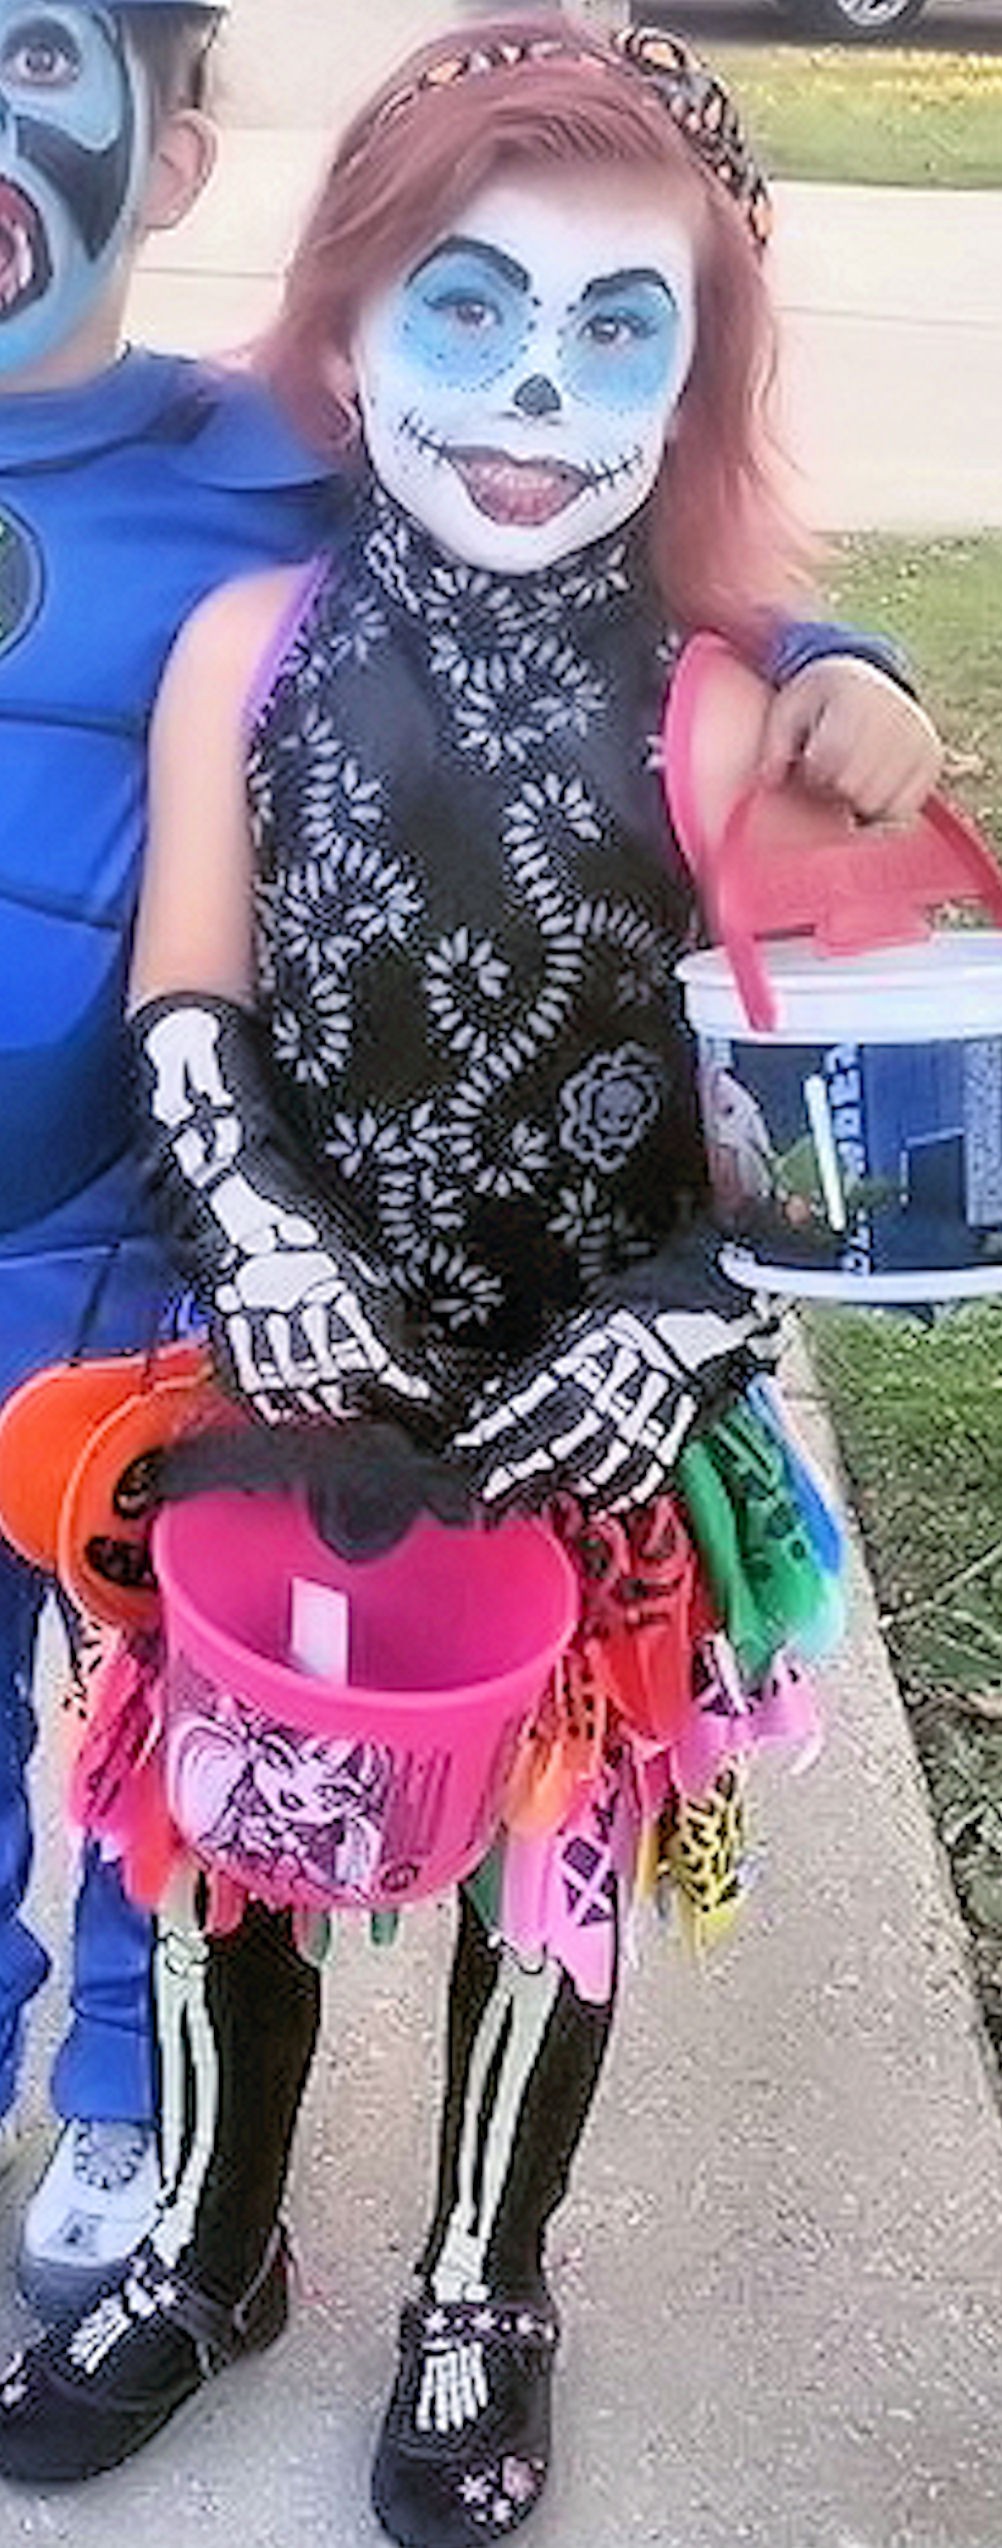 Halloween Costume Contest 2013 Halloween Love. SaveEnlarge · Monster High Skelita Calaveras ...  sc 1 st  Meningrey & Skelita Calaveras Halloween Costume - Meningrey